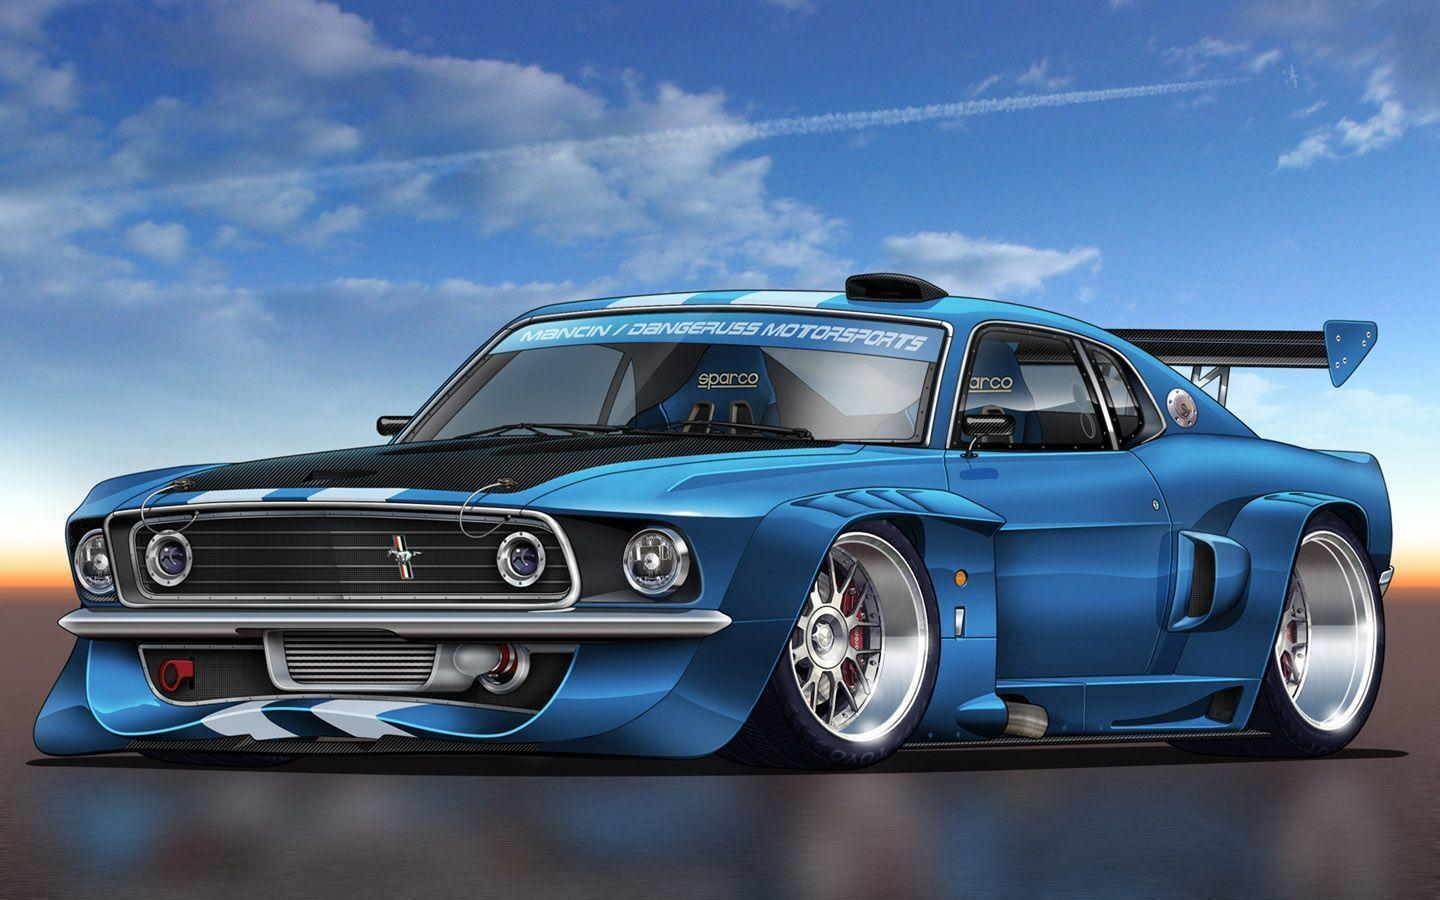 3d car wallpapers for desktop | HD Cars Wallpapers